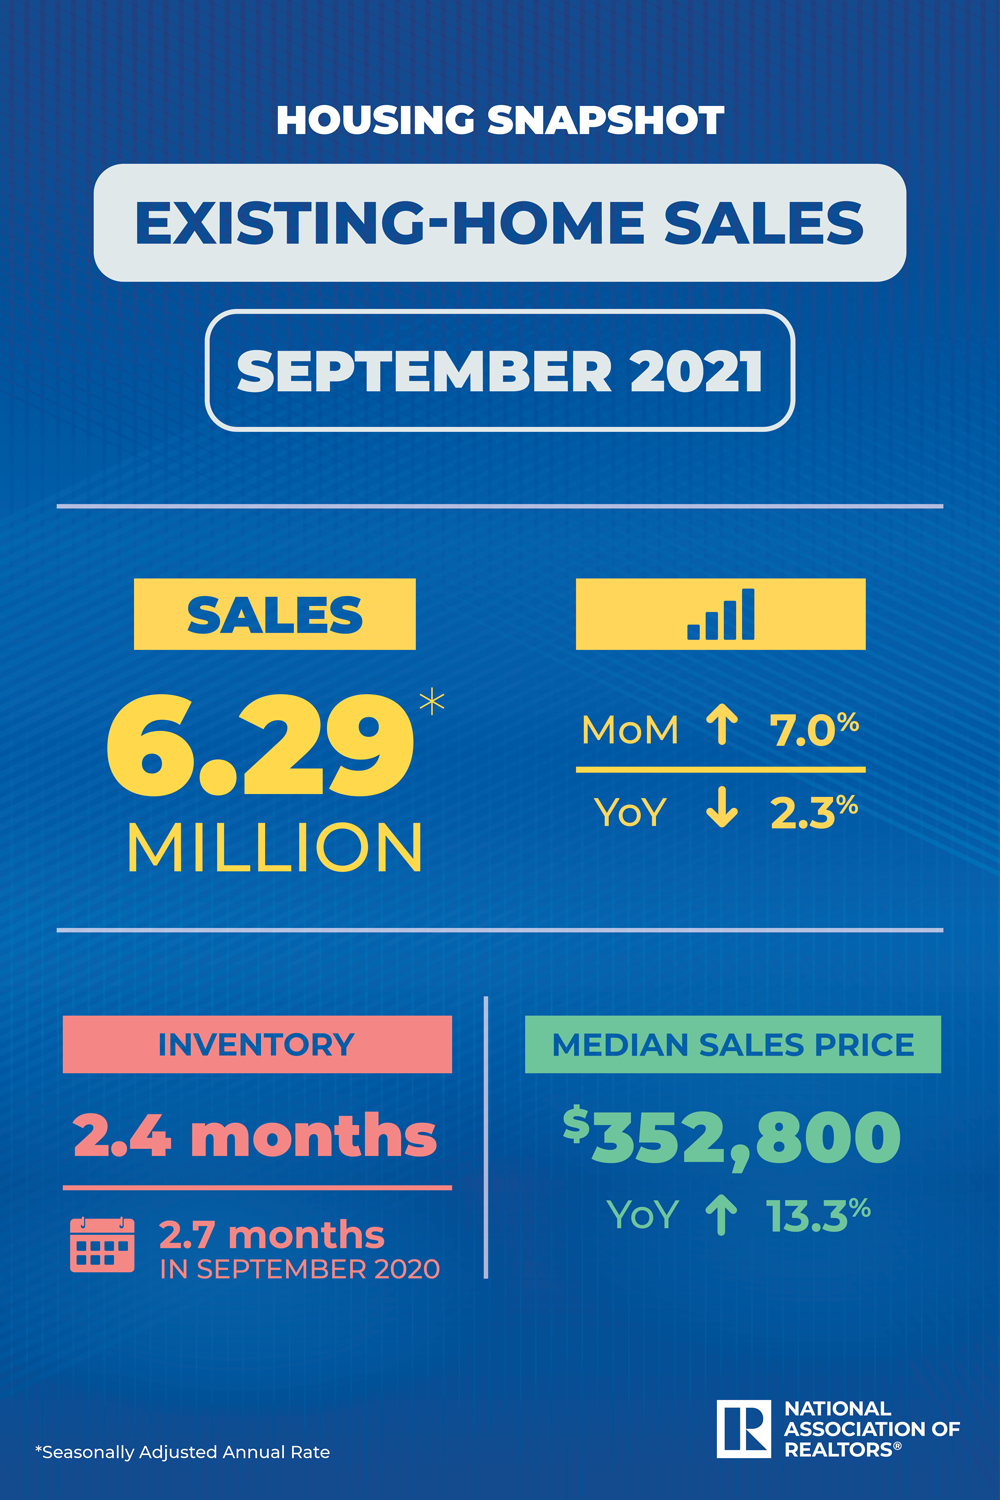 A graphic showing the breakdown of existing-home sales for September of this year.